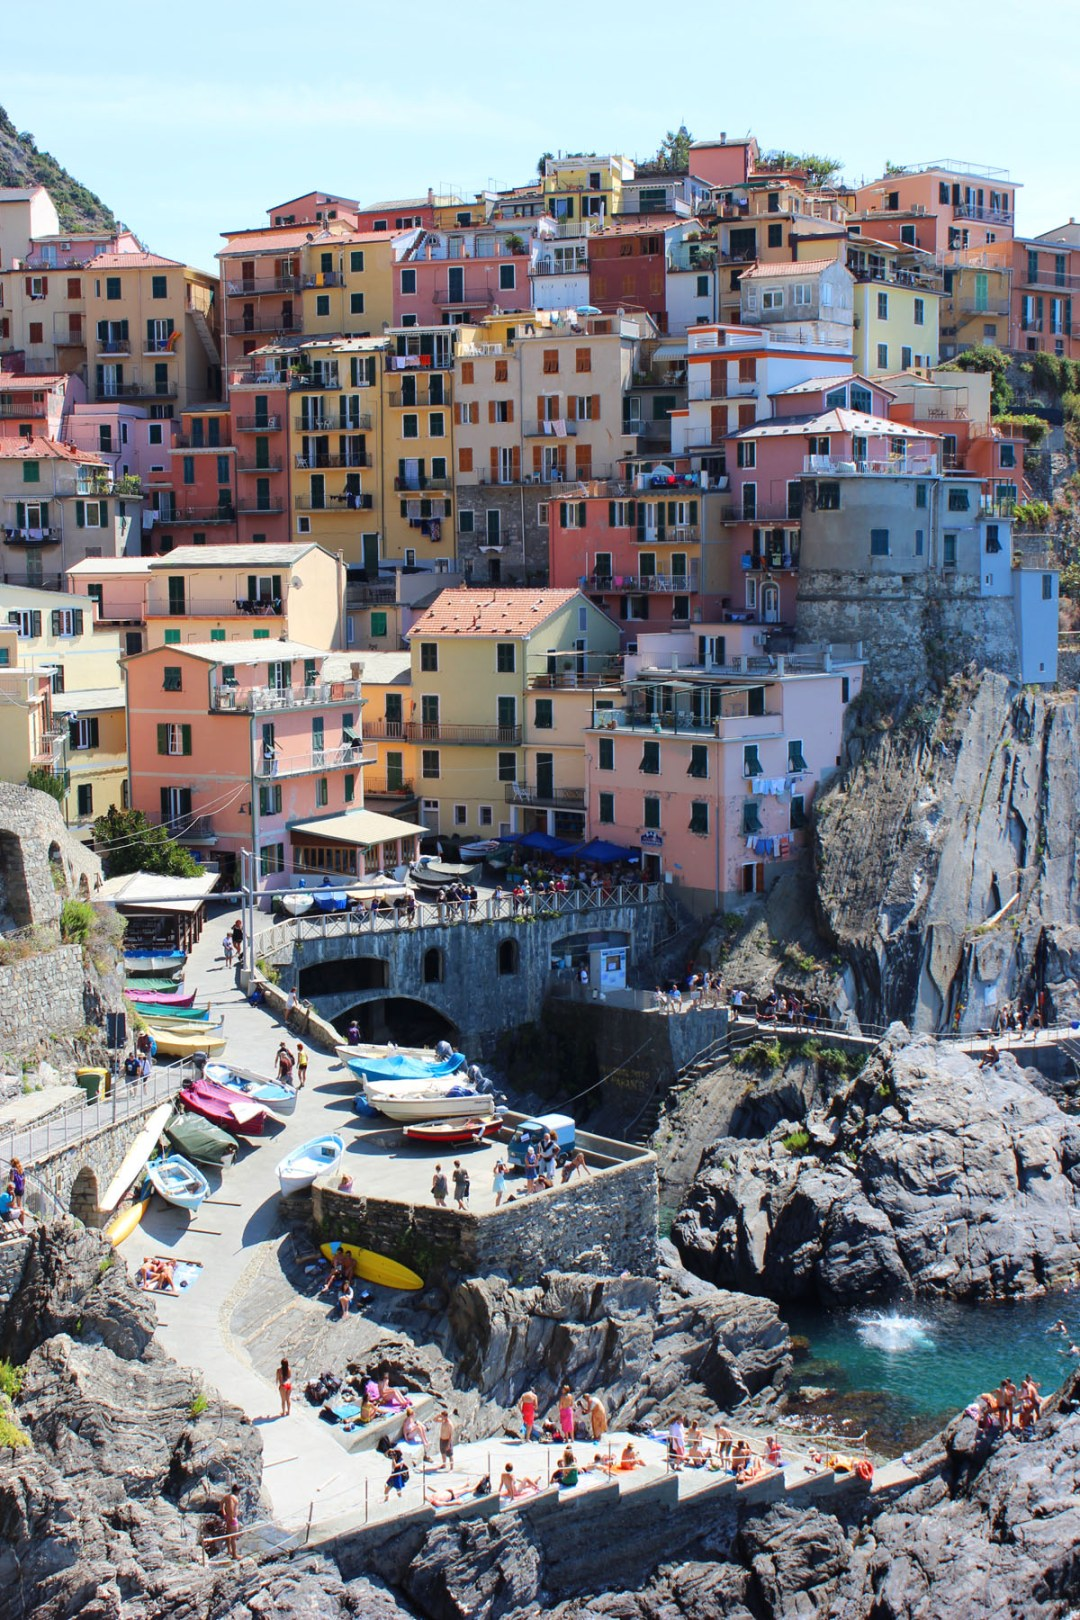 Voyages-cinque-terre-copyright-Manon-happynewgreen-57